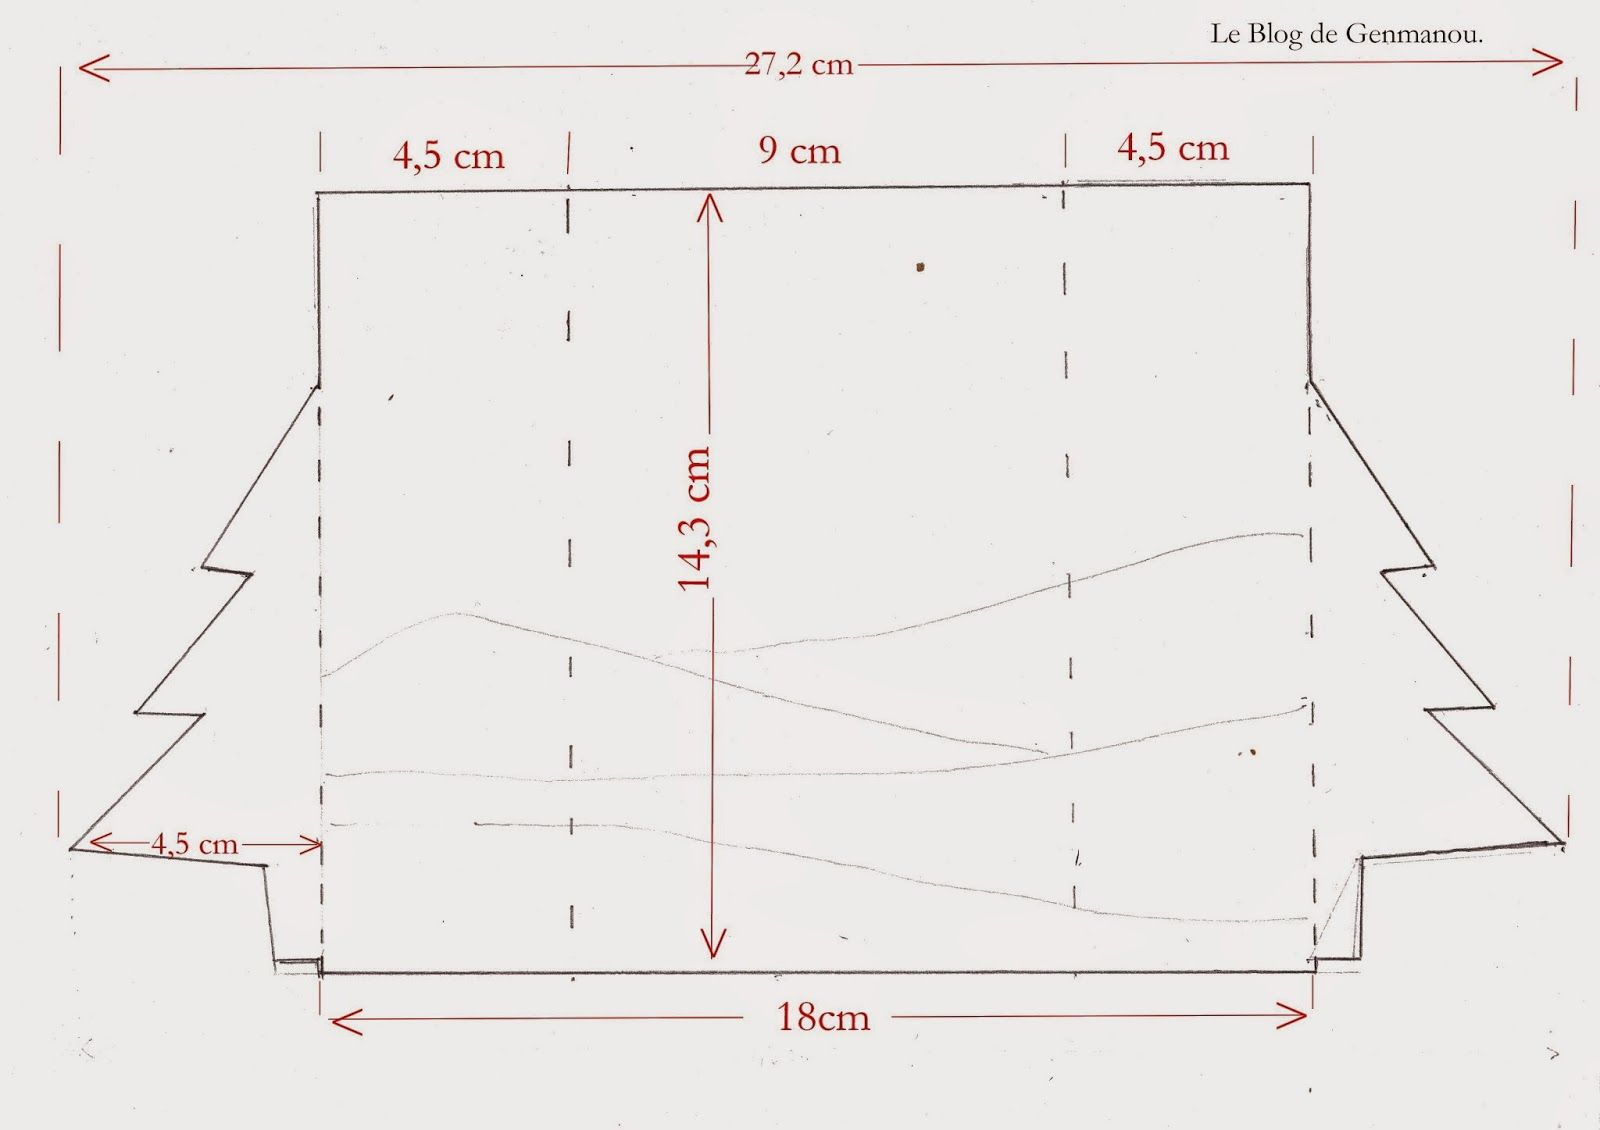 Diagram For Fancy Fold Christmas Card From The Blog Of Genmanou Tree Tuto